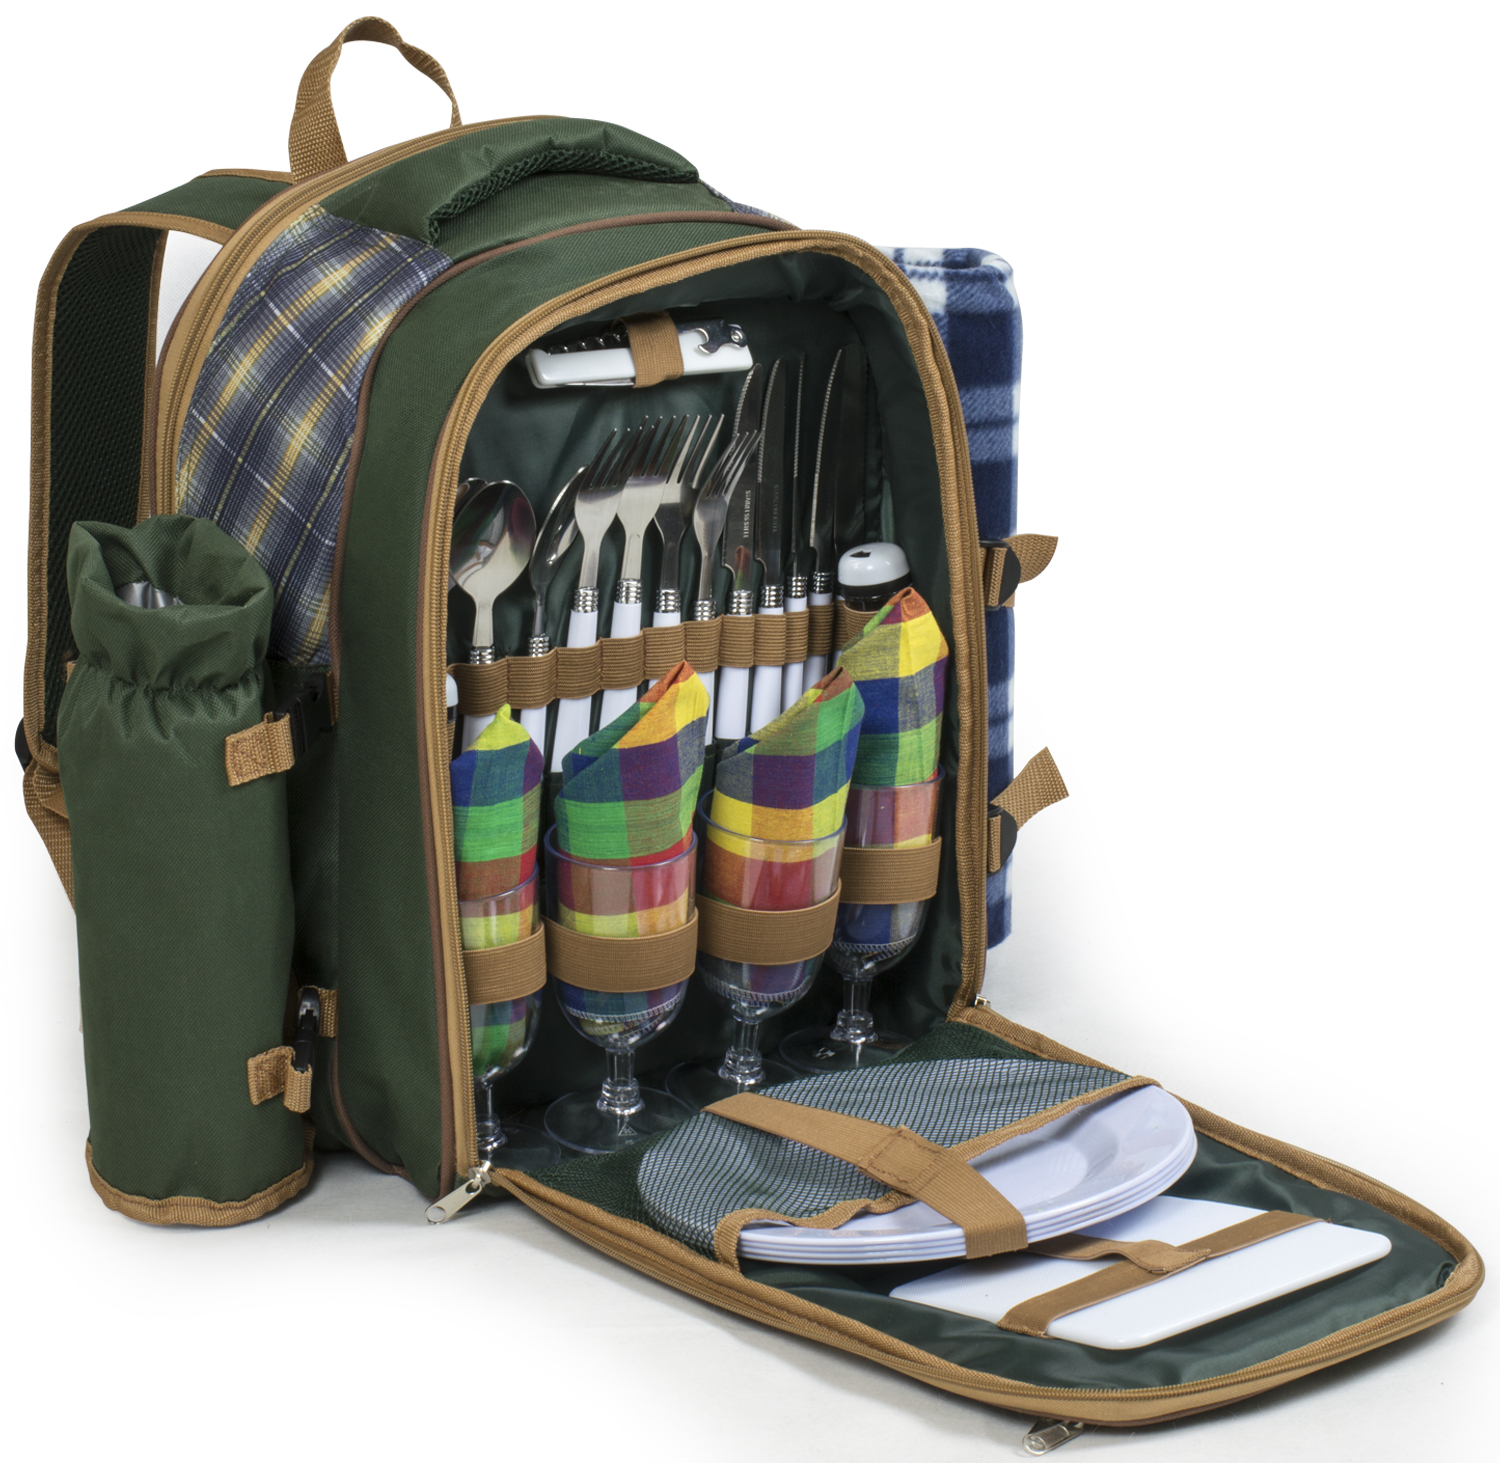 Andes Picnic Backpack Andes Outdoor Value